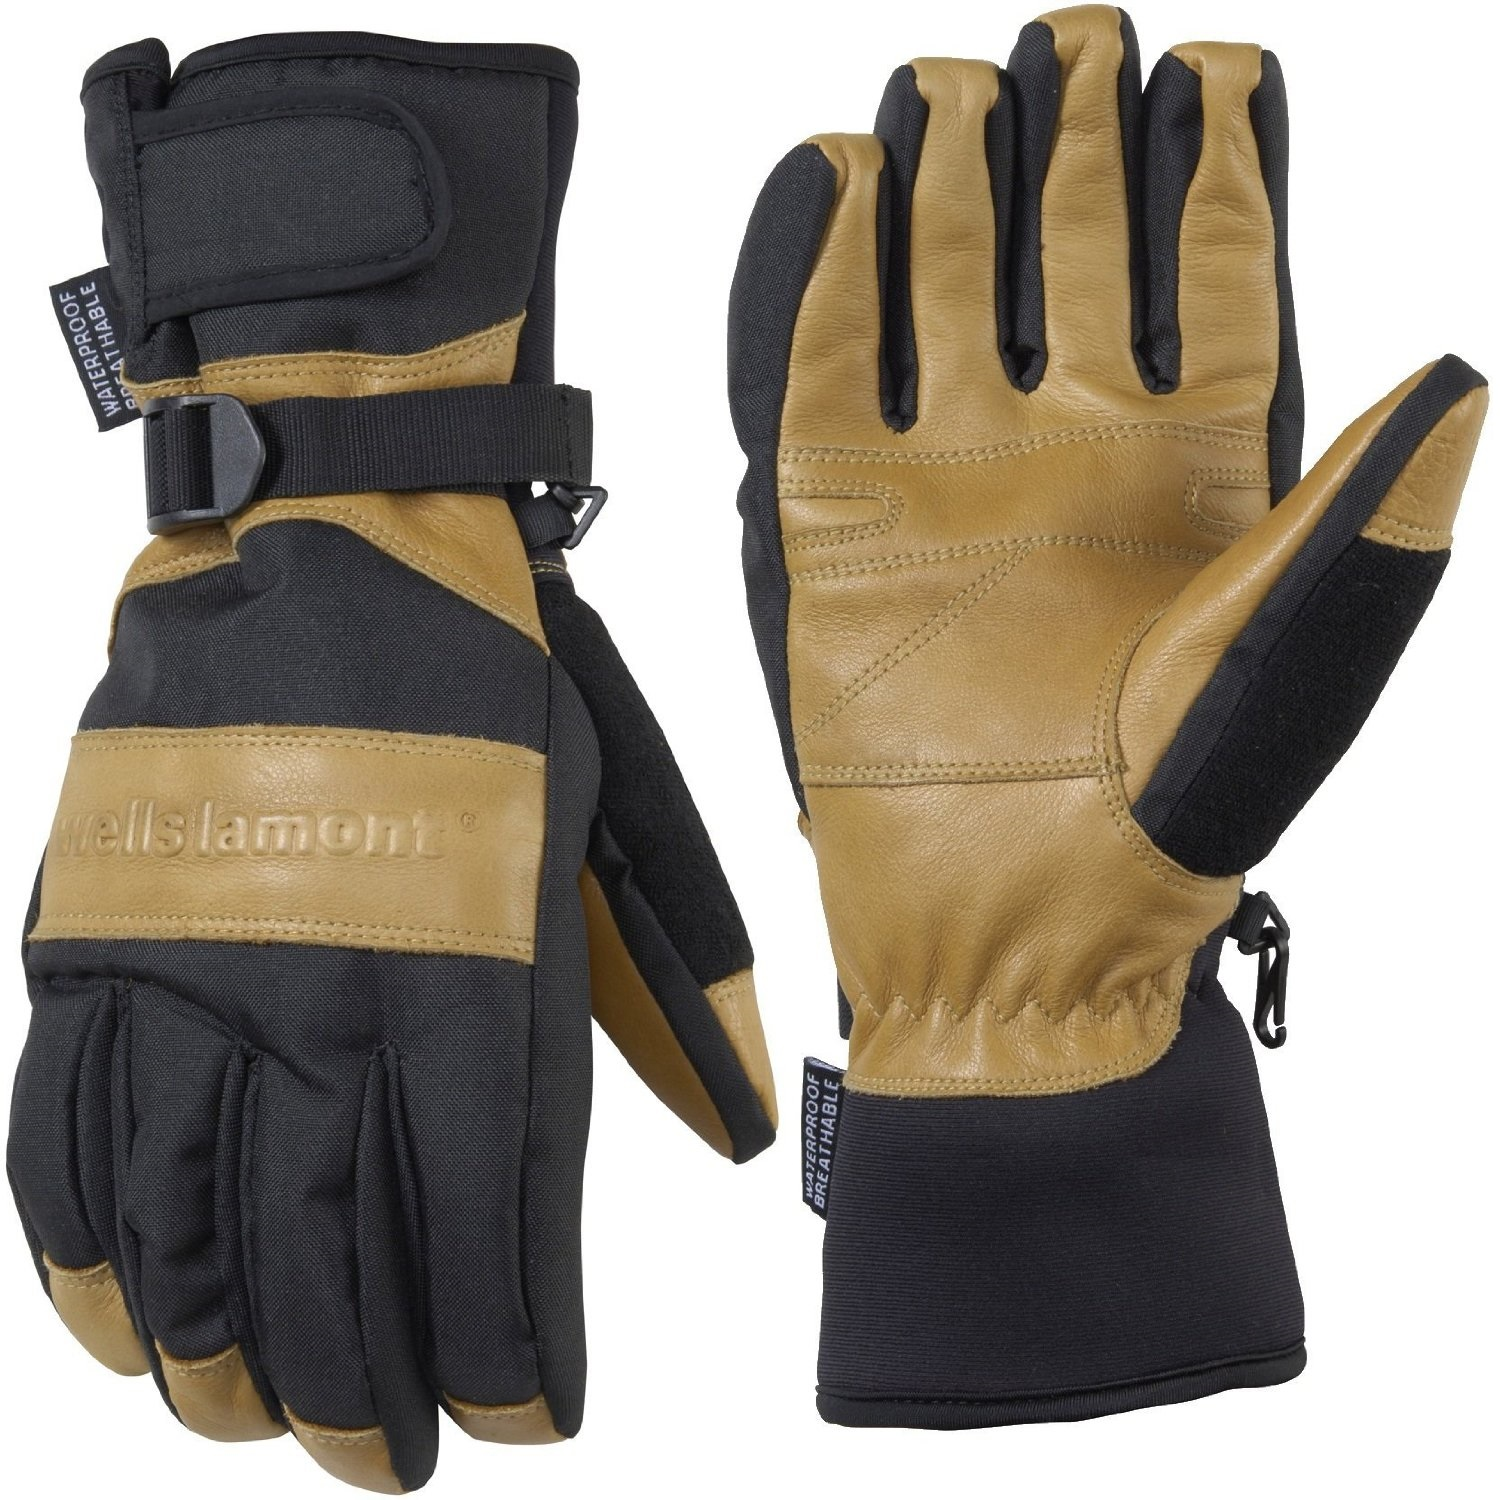 Mens leather insulated gloves - Wells Lamont Grips Gold Insulated Waterproof Gloves Men Lrg Sku